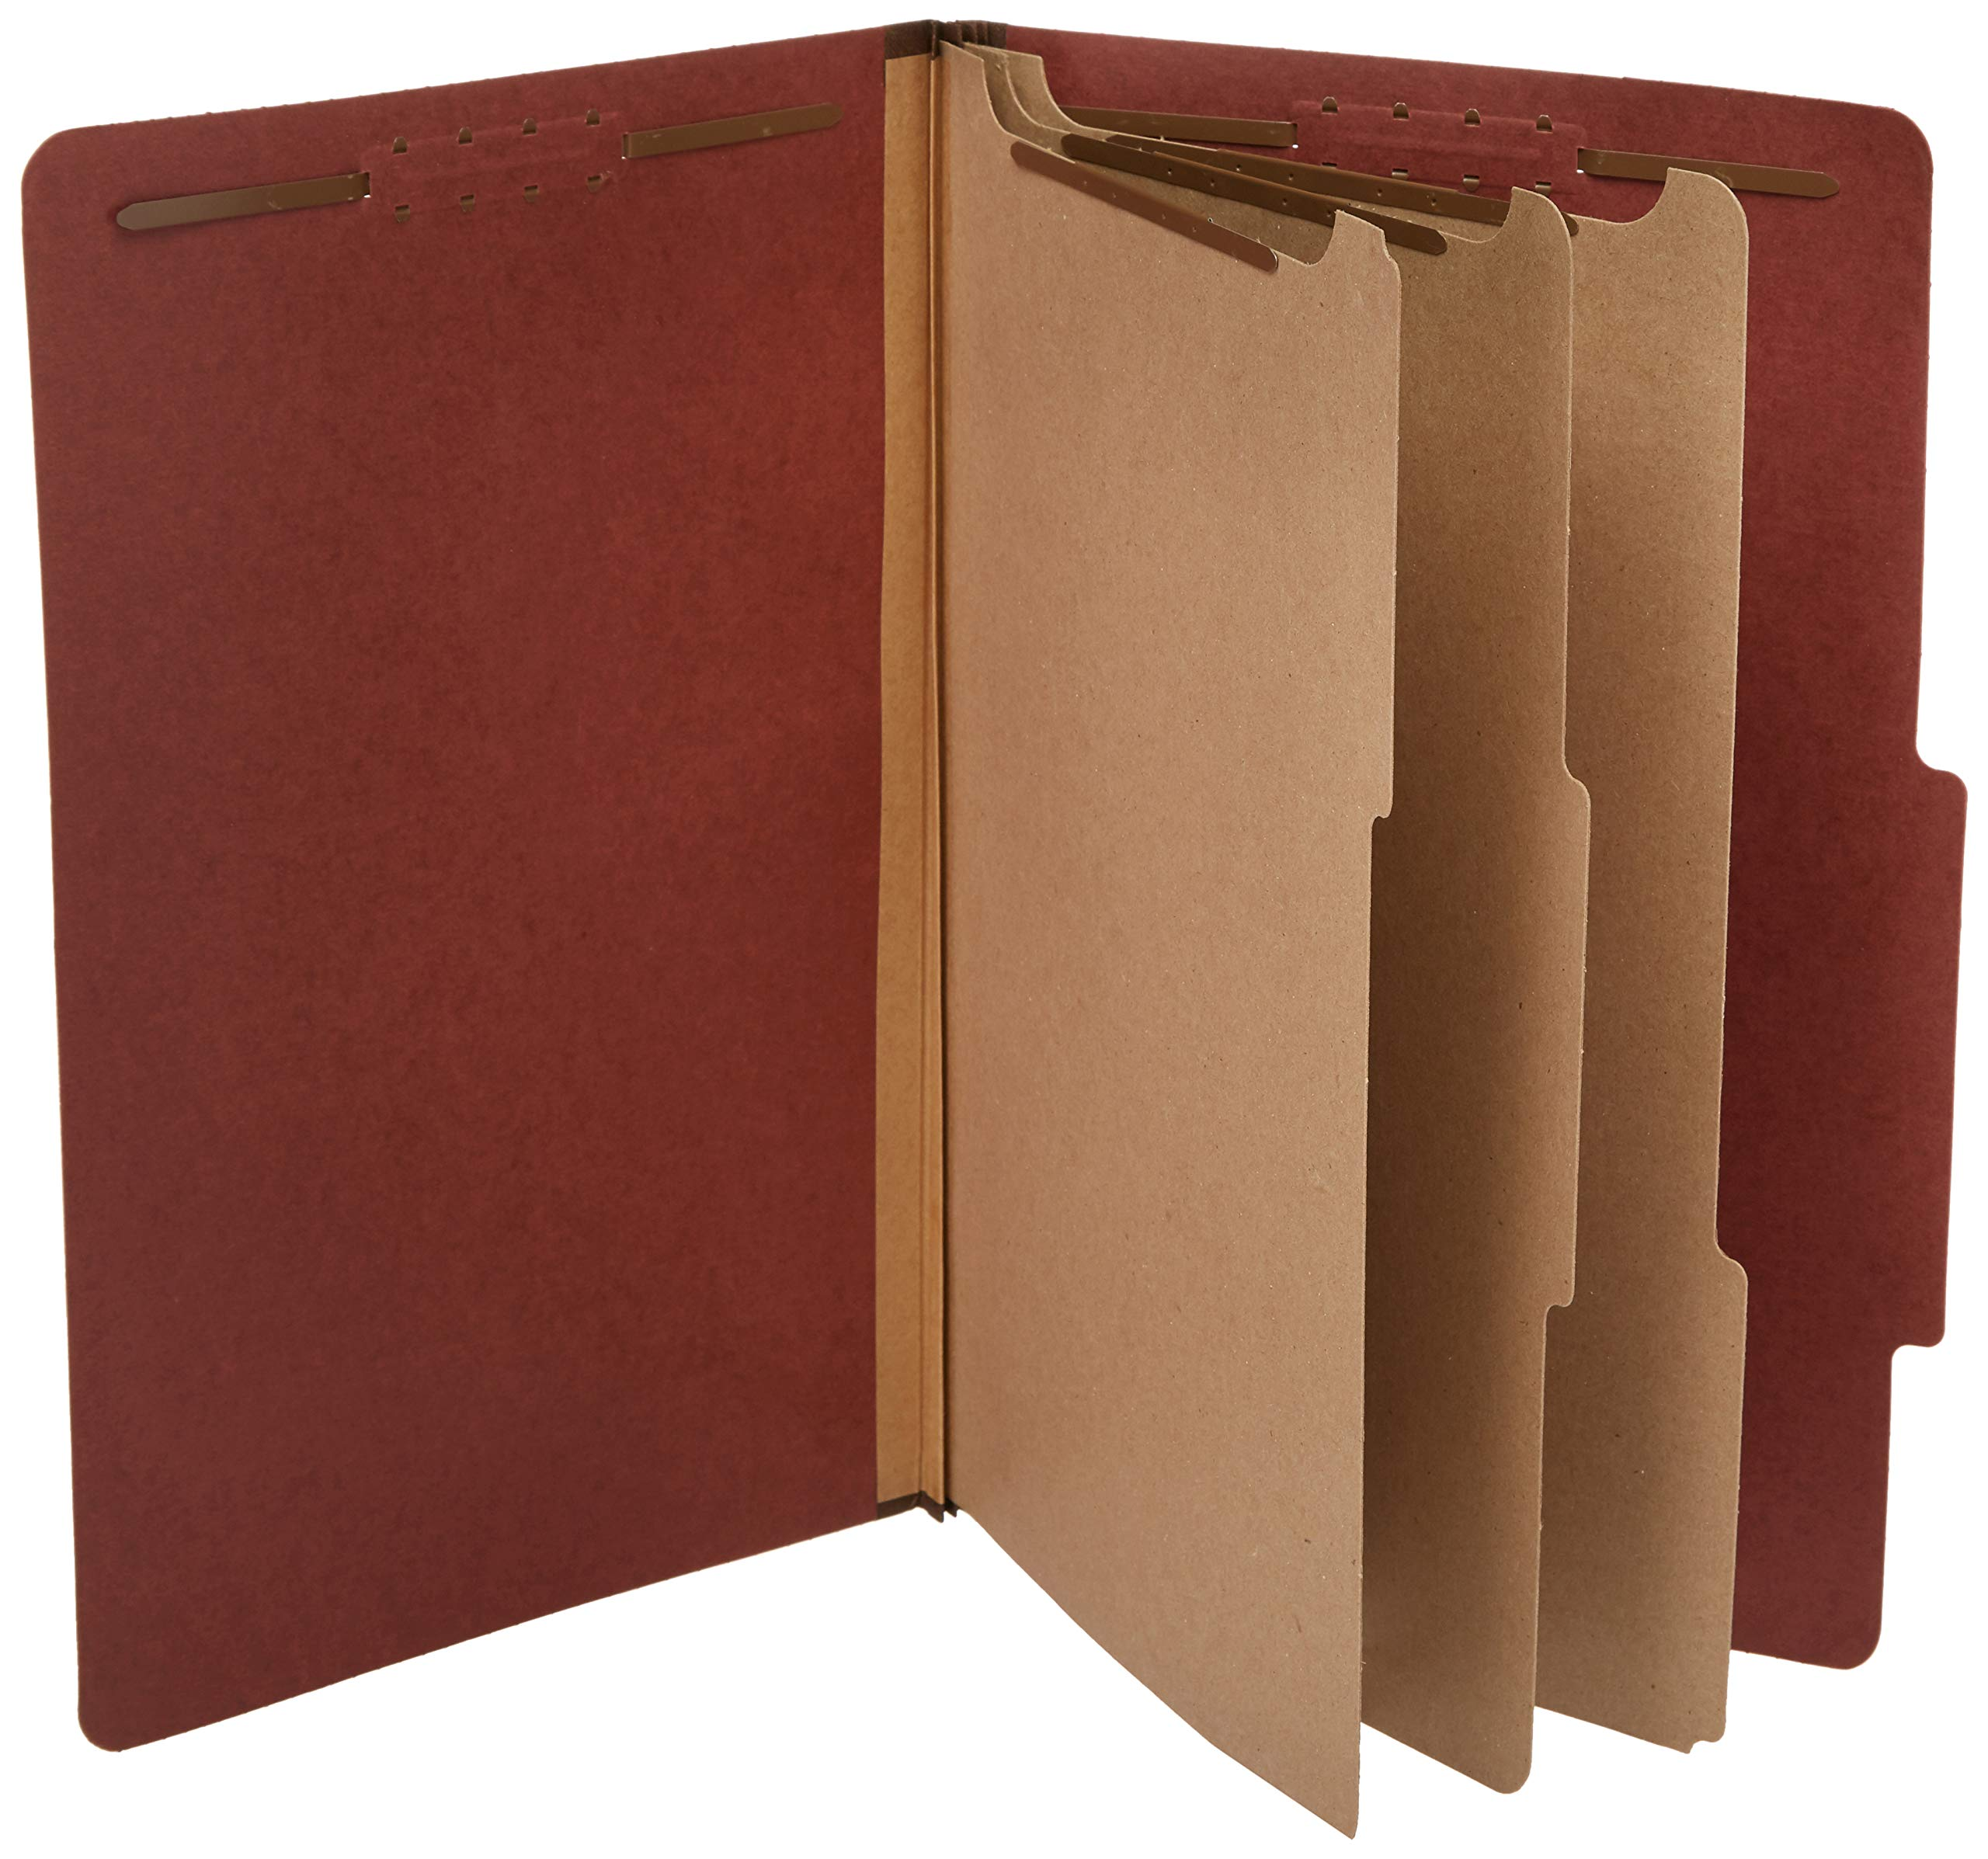 AmazonBasics Pressboard Classification File Folder with Fasteners, 3 Dividers, 3.5 Inch Expansion, Legal Size, Red (10 Pack) by AmazonBasics